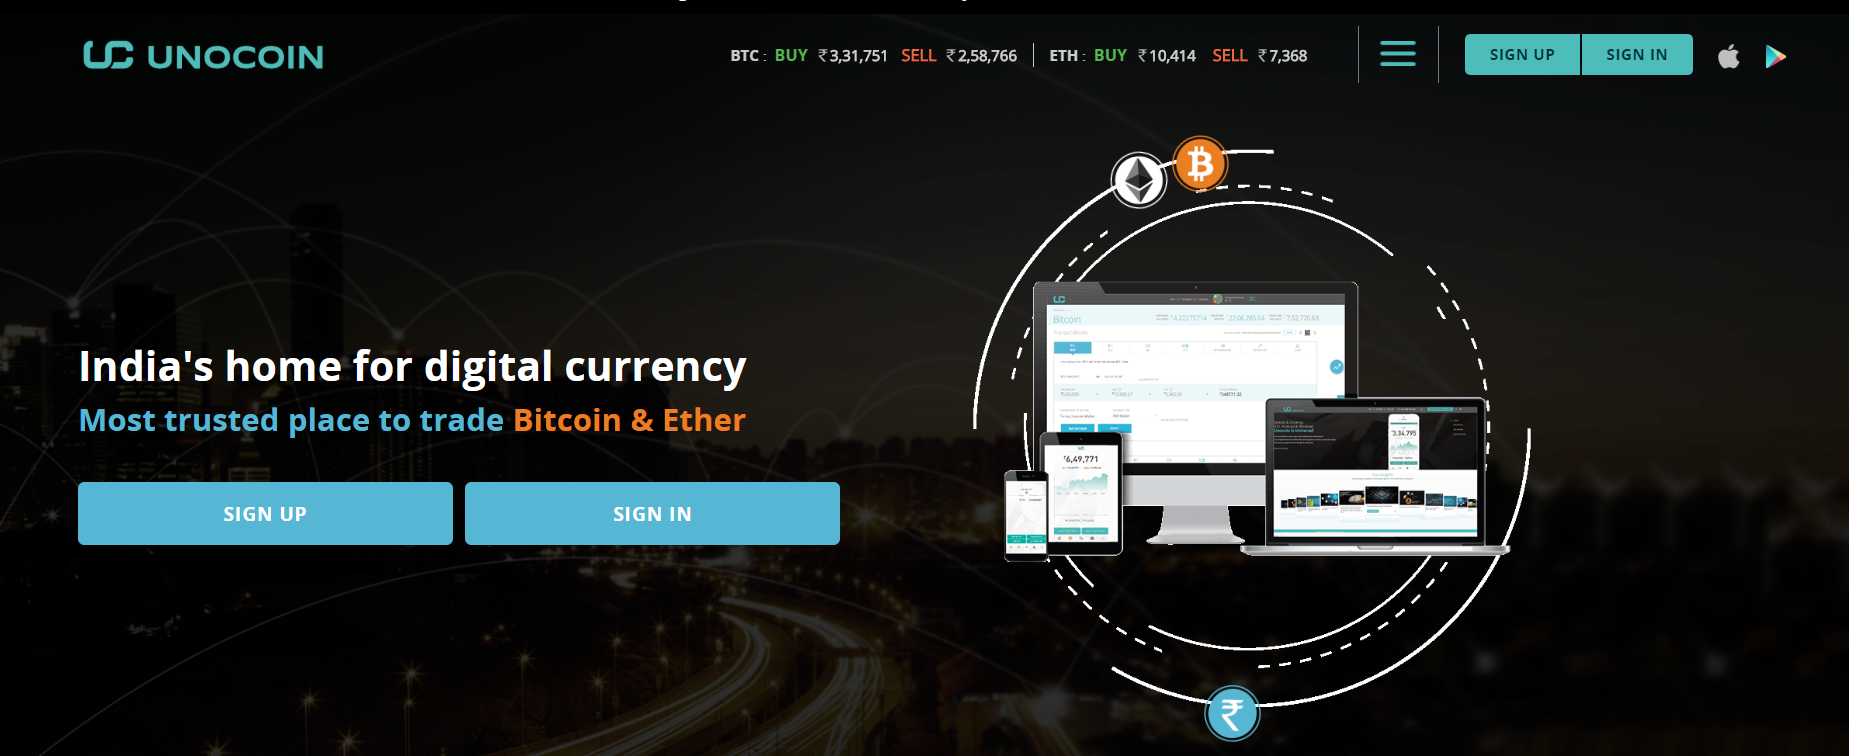 Unocoin BTC exchange